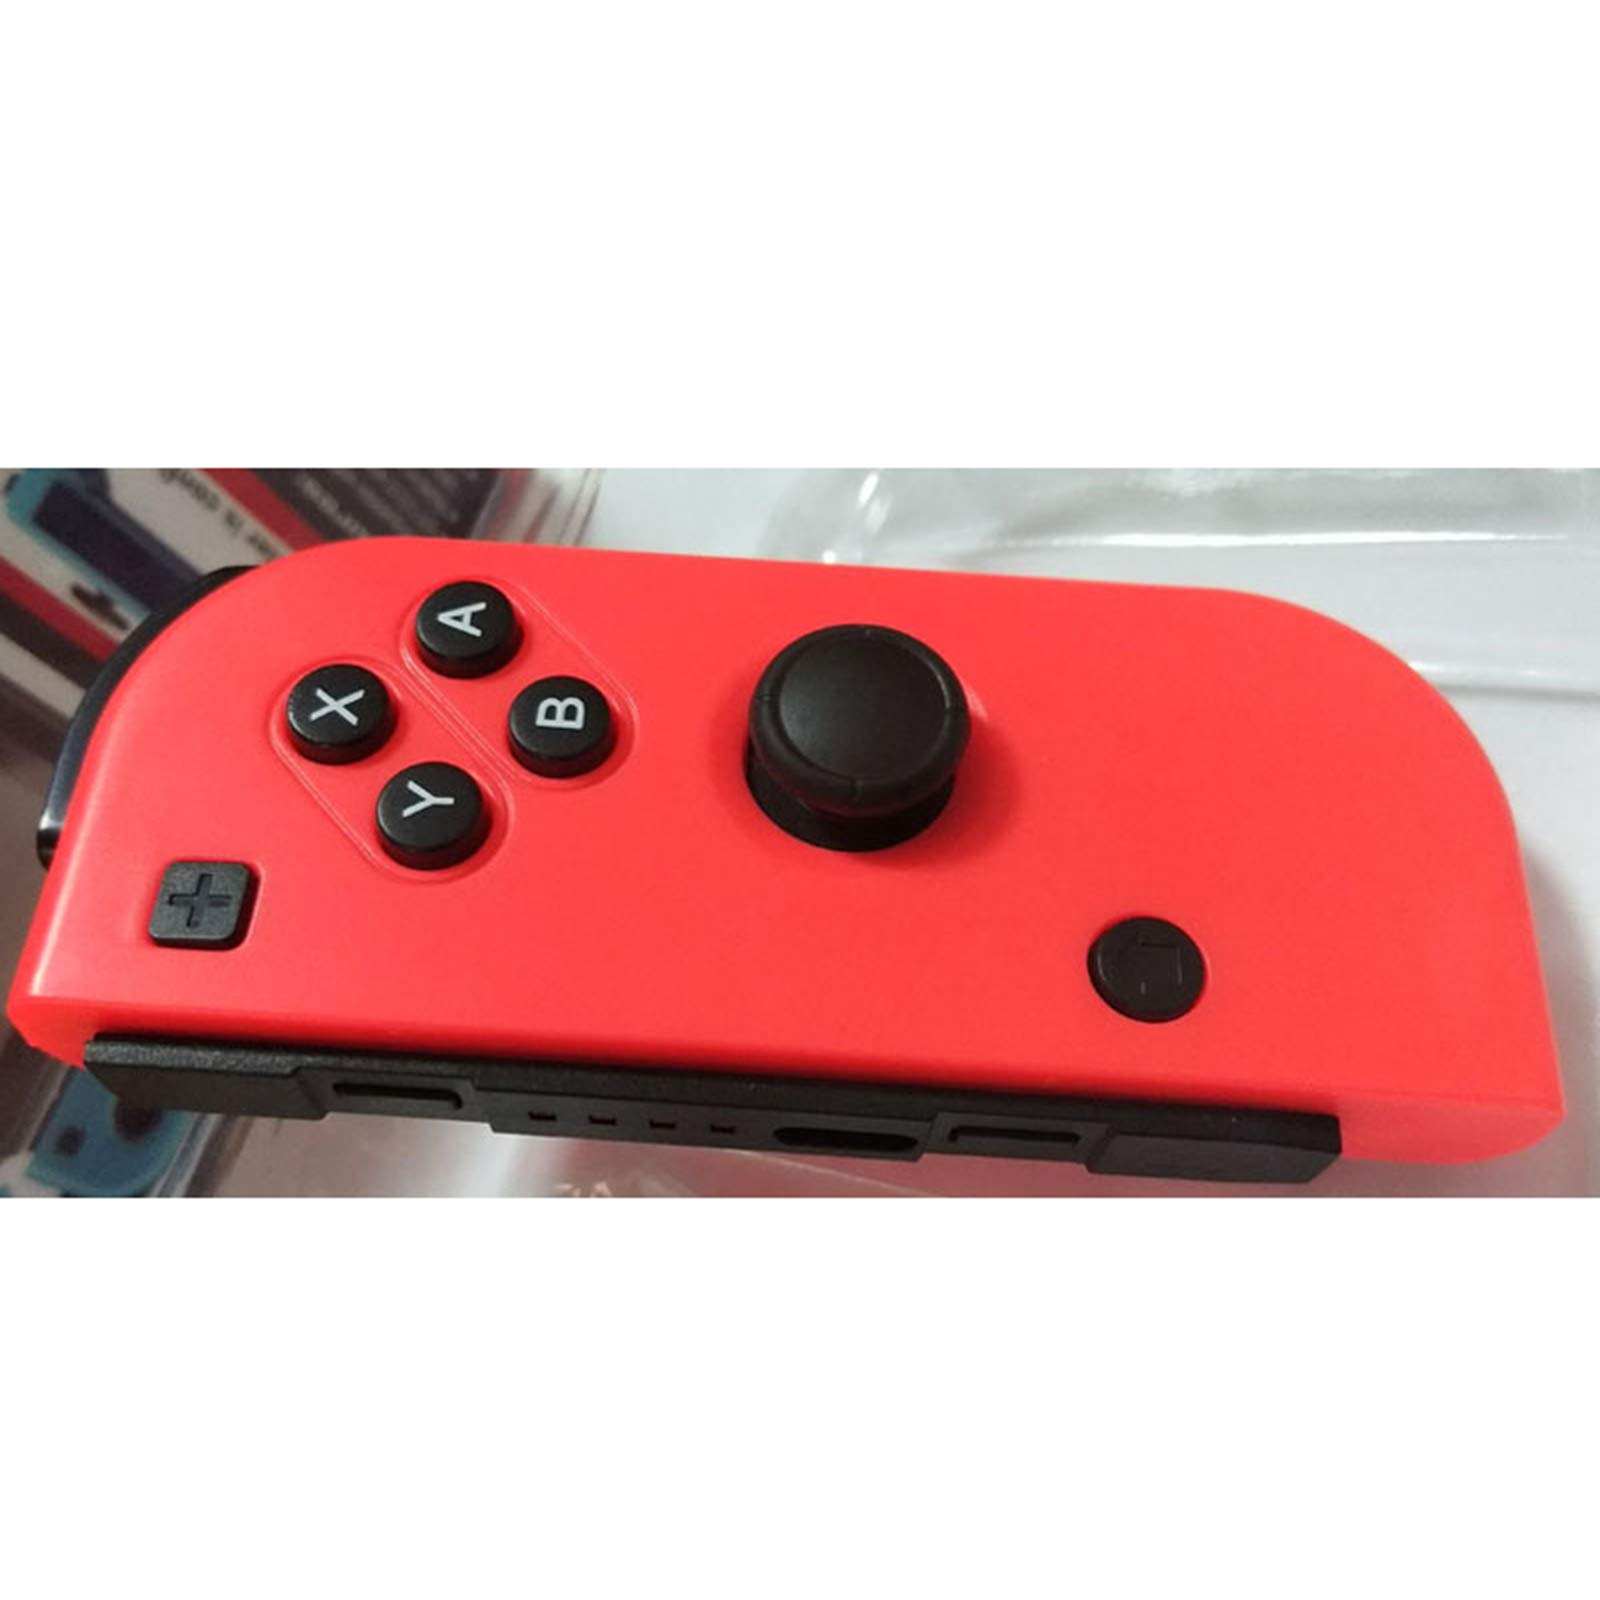 XBERSTAR Wireless Game Controller Left Right Gamepad Joystick for Nintendo Switch Console by XBERSTAR (Image #4)